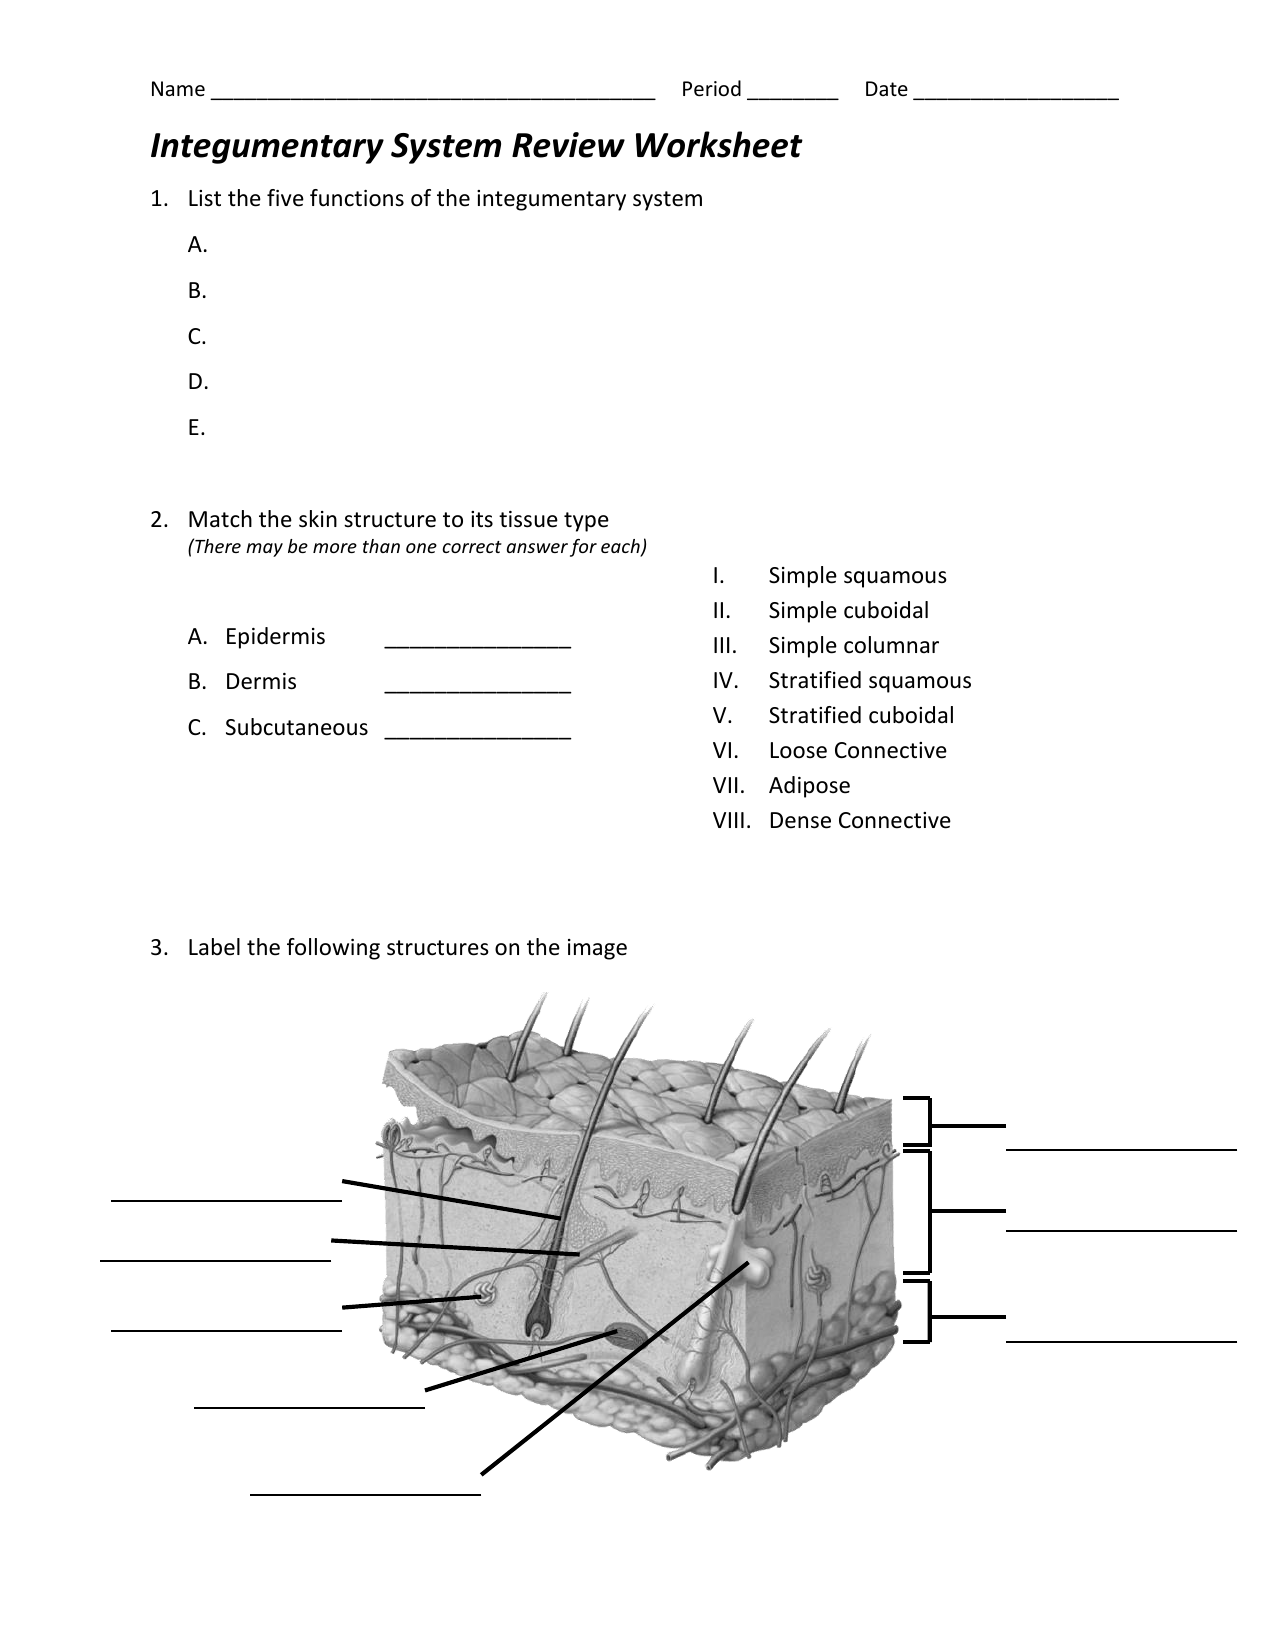 Integumentary System Diagram Worksheet